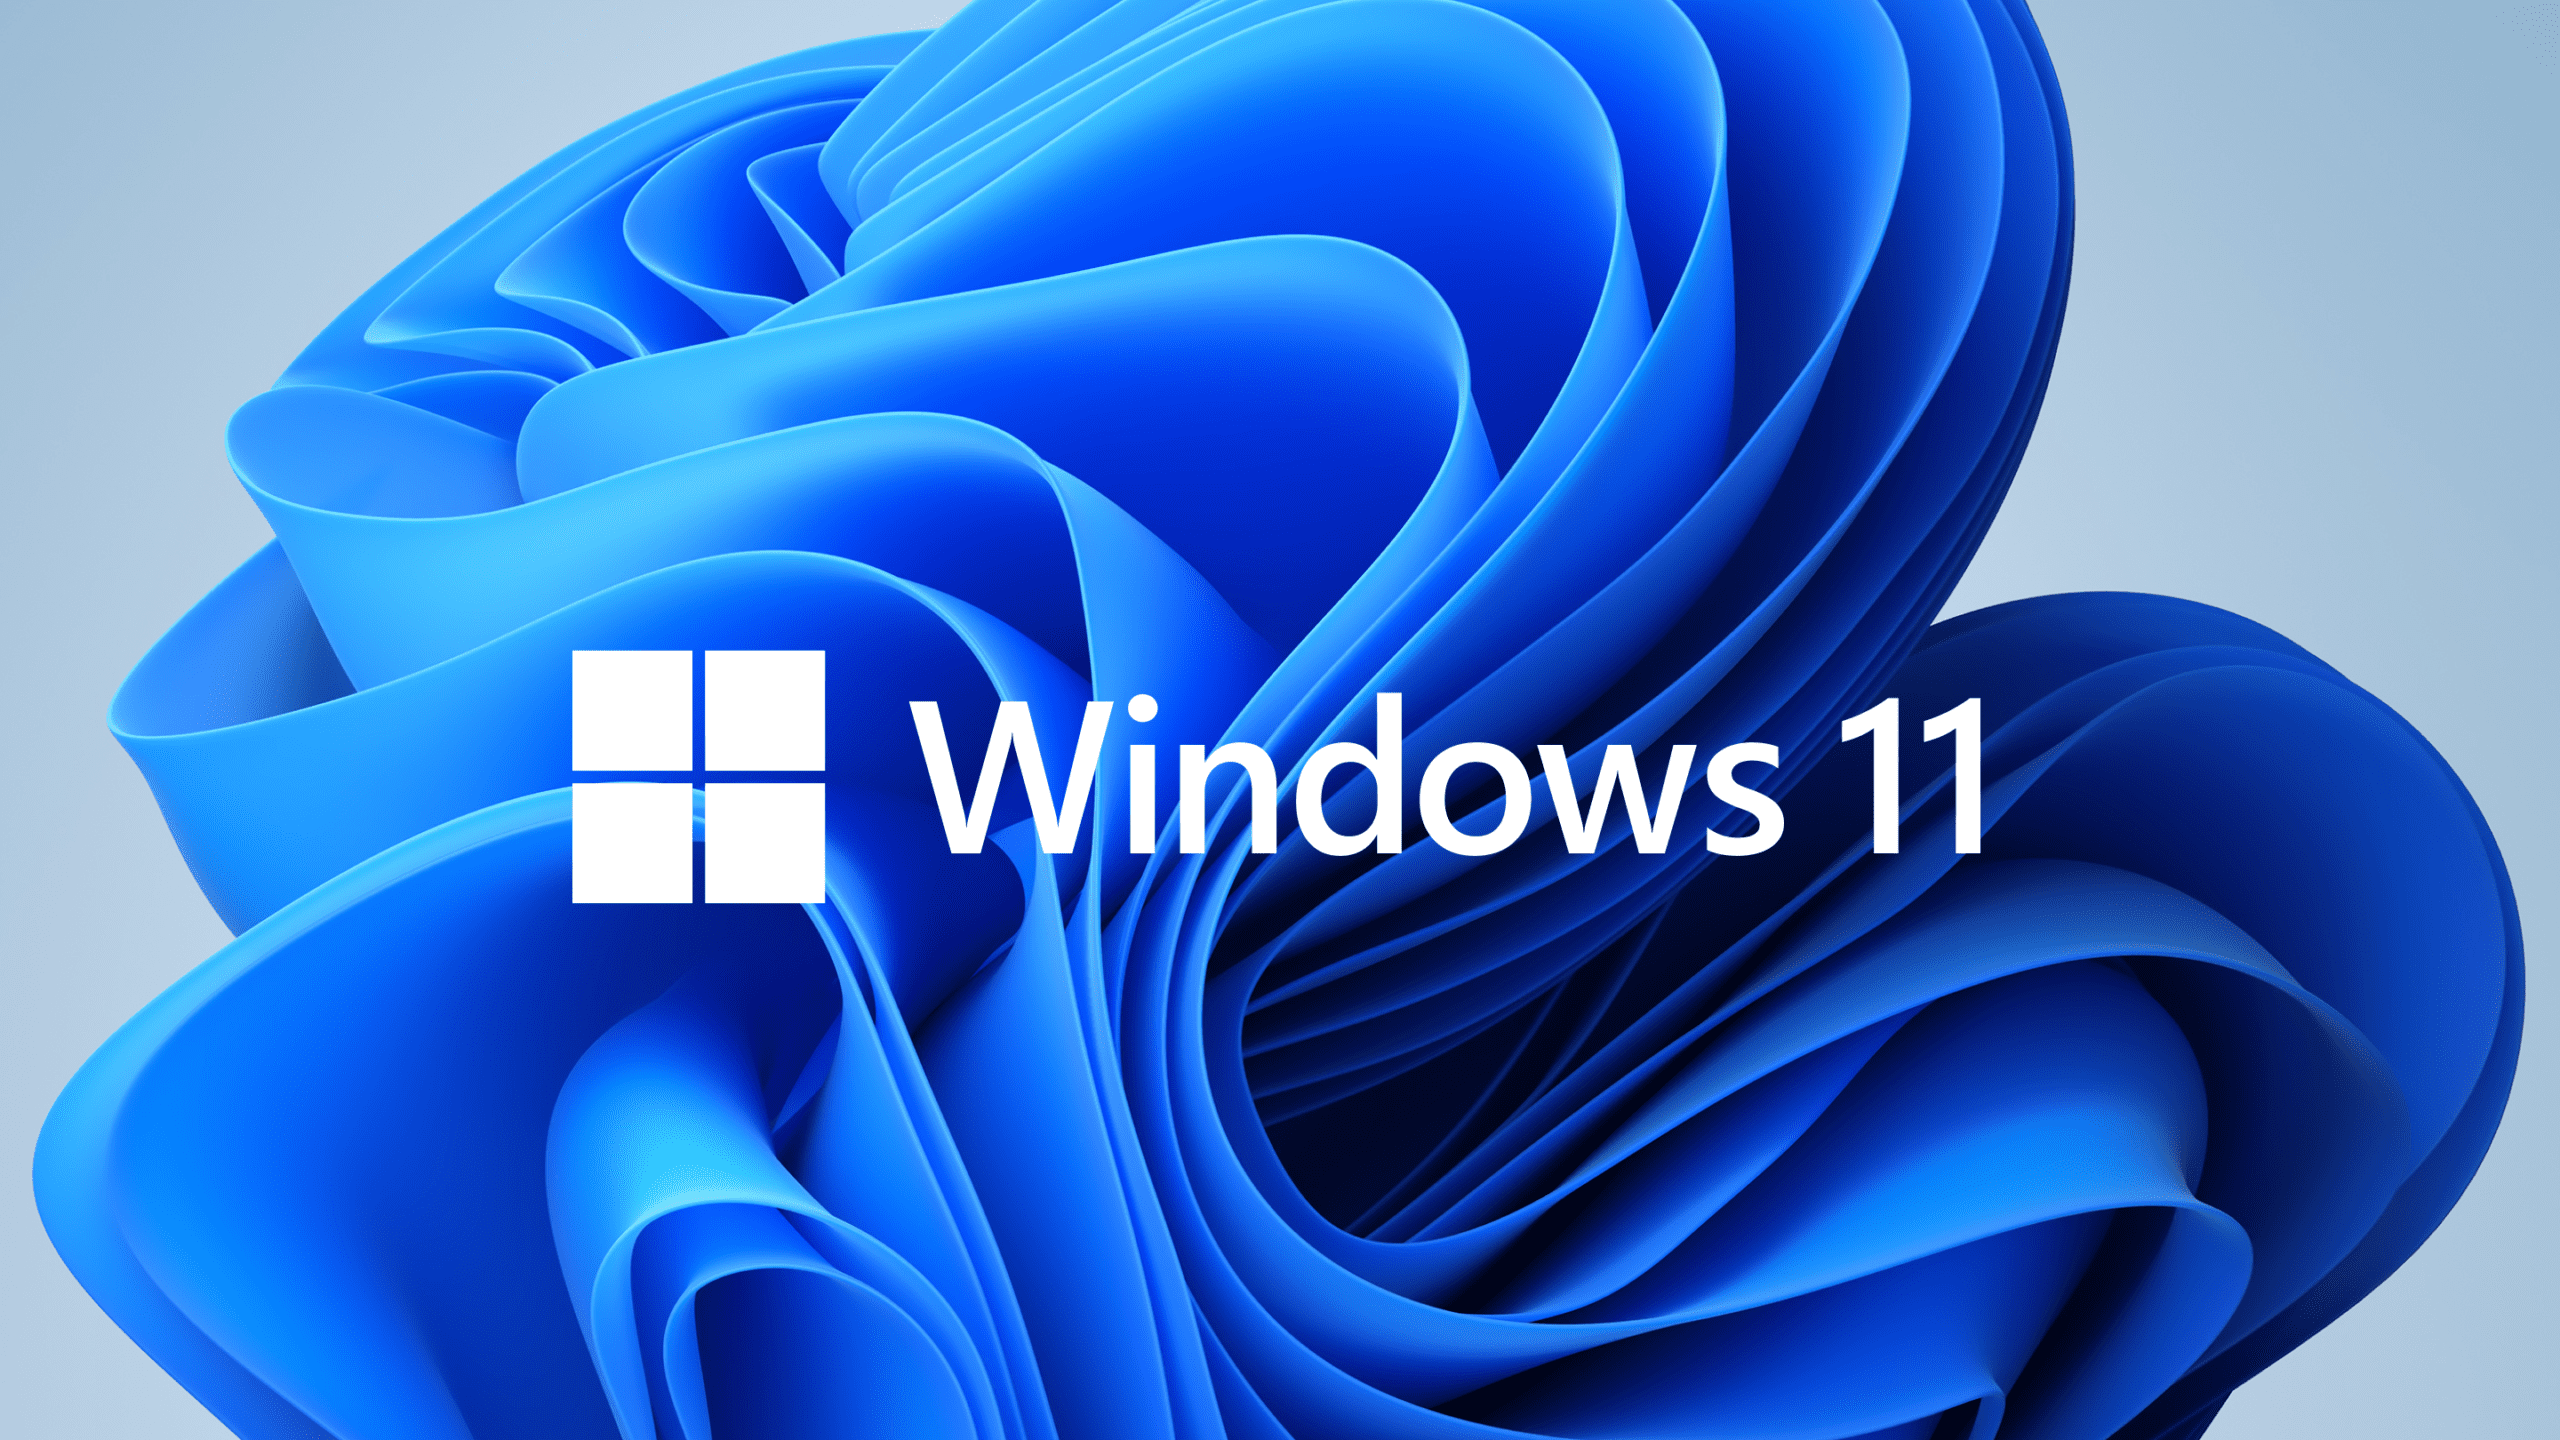 What Are The Features Of Windows 11?